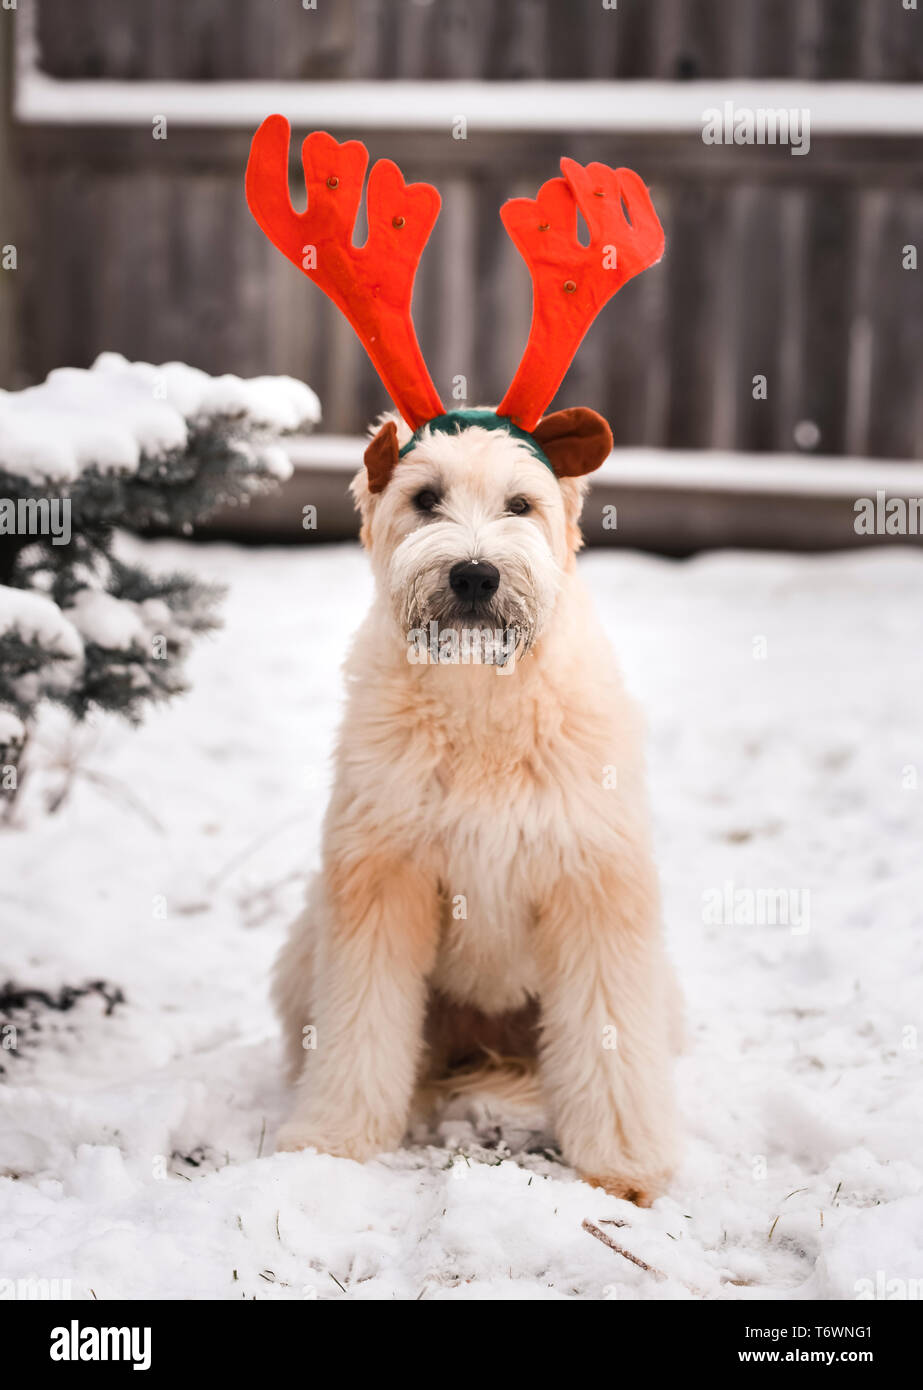 Dog sitting outside in the snow wearing colorful reindeer antlers. - Stock Image